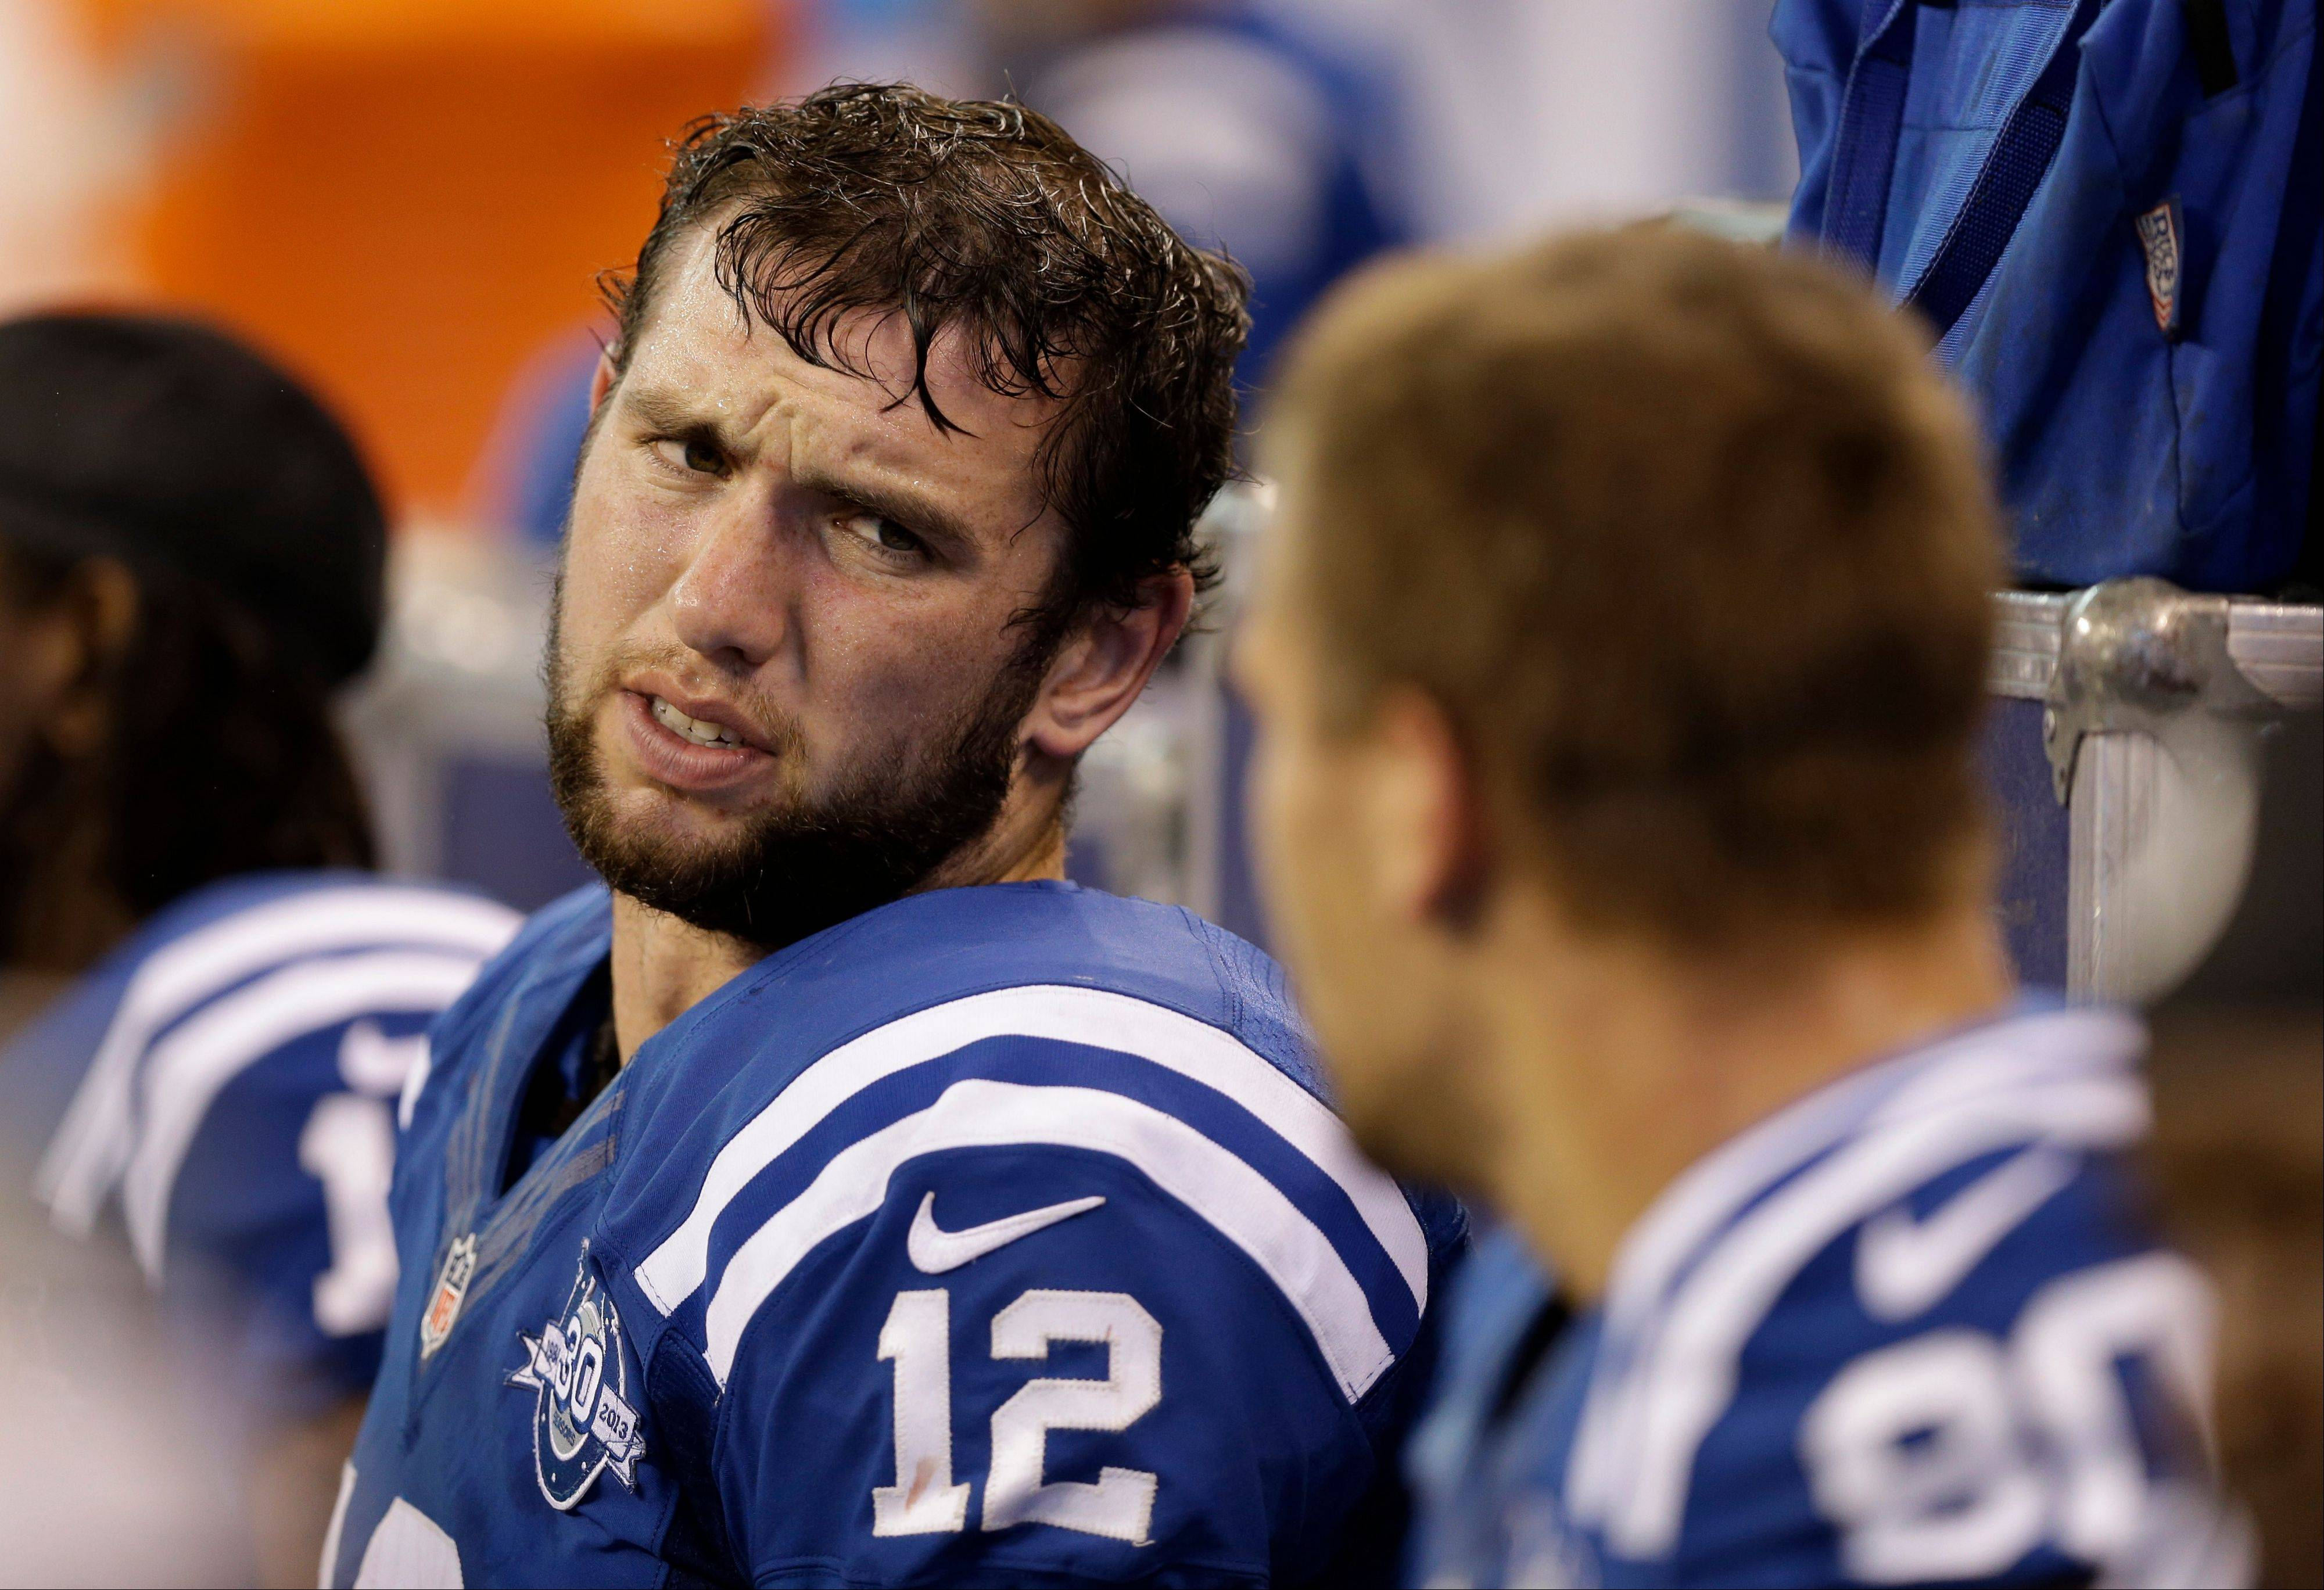 Indianapolis Colts quarterback Andrew Luck, left, talks Sunday with tight end Coby Fleener in the final minutes of the second half of an NFL football game against the St. Louis Rams in Indianapolis, Sunday, Nov. 10, 2013. The Rams defeated the Colts 38-8.(AP Photo/Darron Cummings)